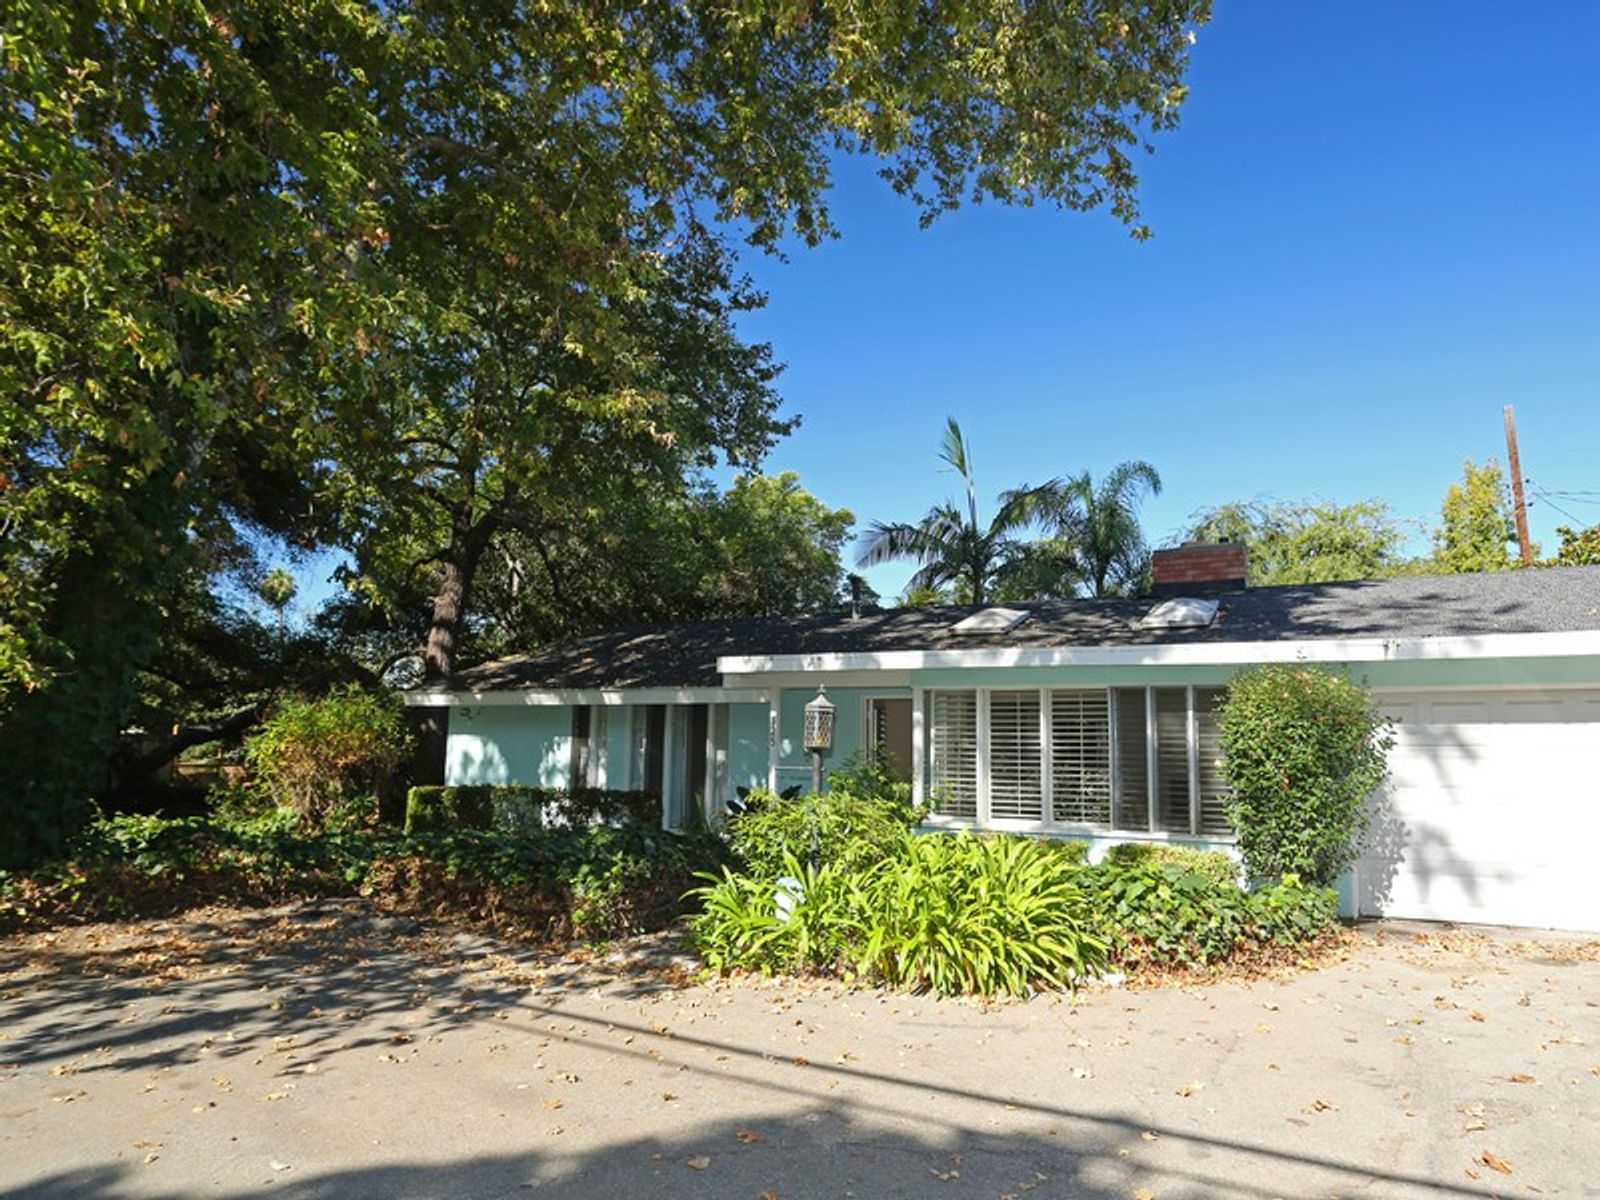 San Roque Gem, Santa Barbara CA Single Family Home - Santa Barbara Real Estate